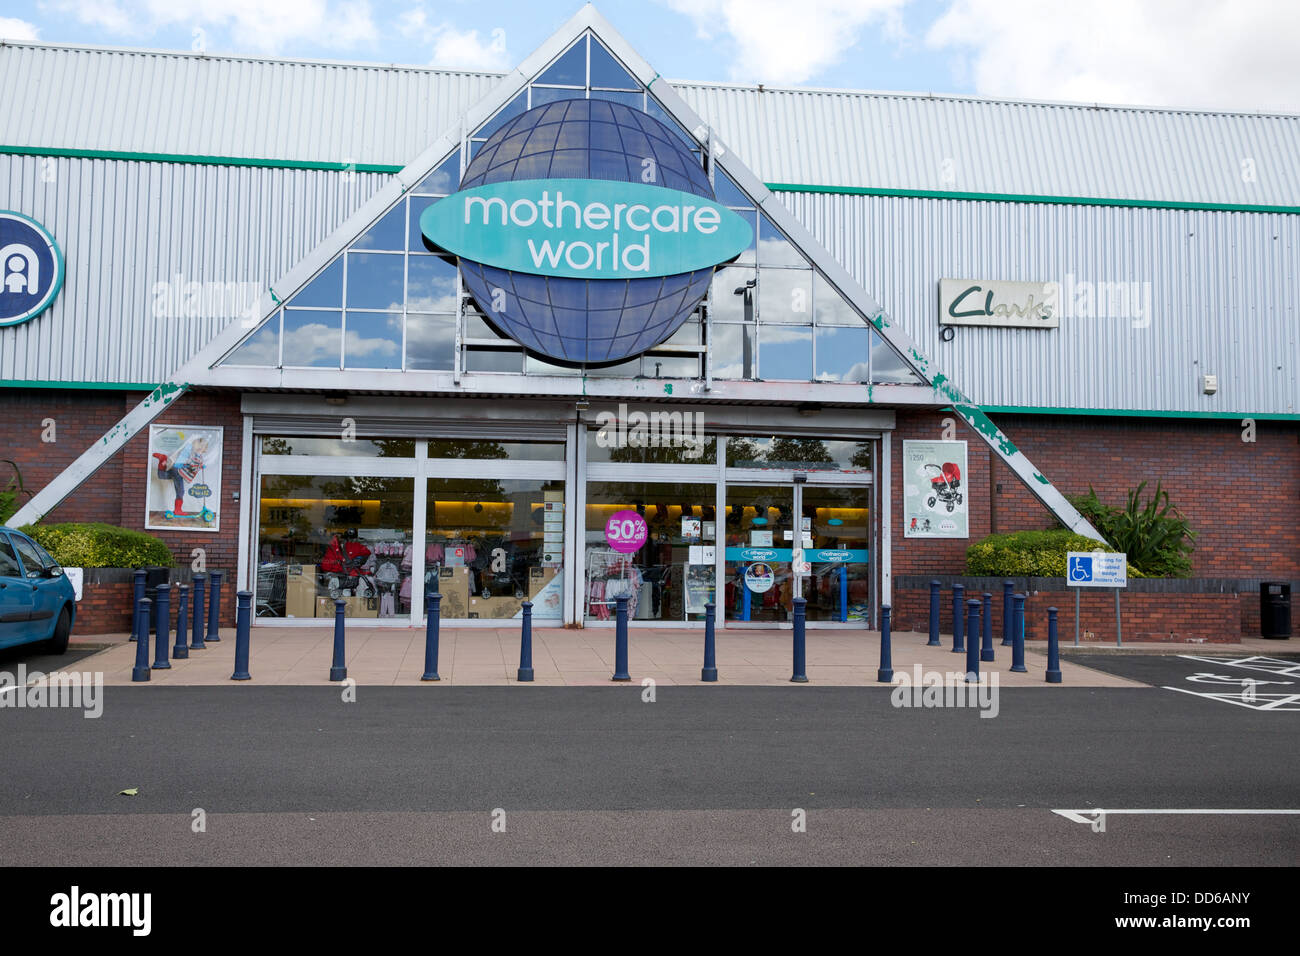 Old Mothercare World Retail Park - Stock Image